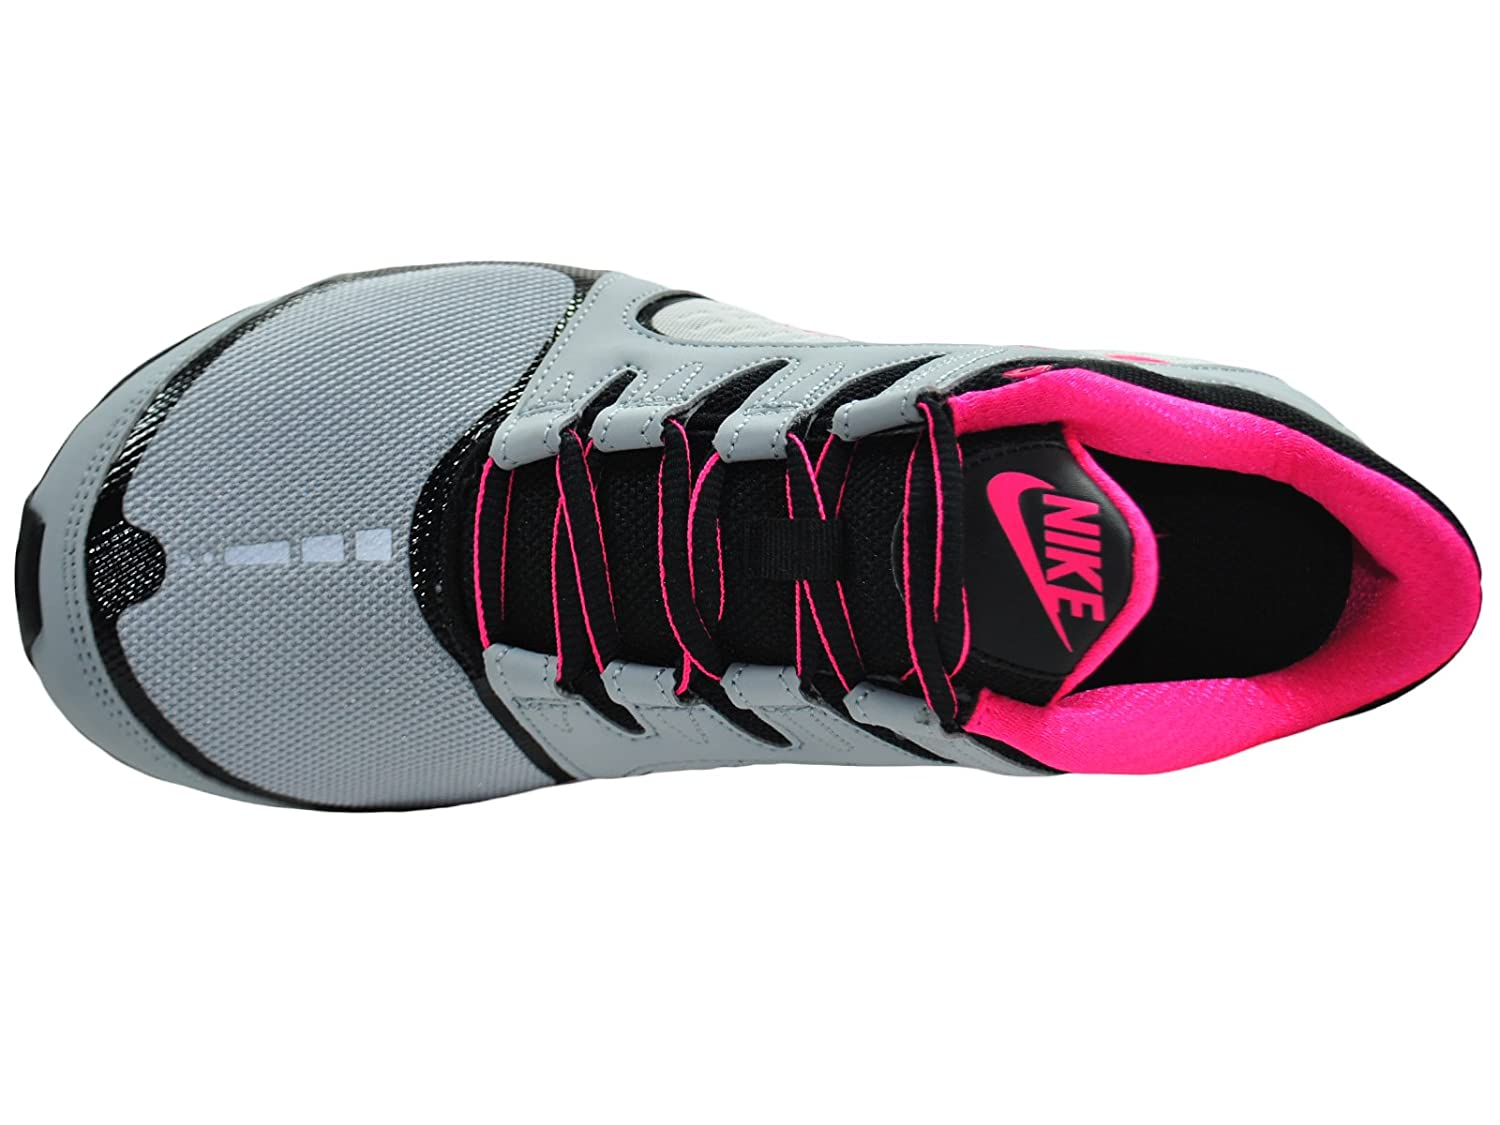 uk availability 0cfc0 89469 Amazon.com   Nike Womens Shox Vaeda Wolf Grey Vivid Pink Black Synthetic Running  Shoes 7.5 M US   Road Running